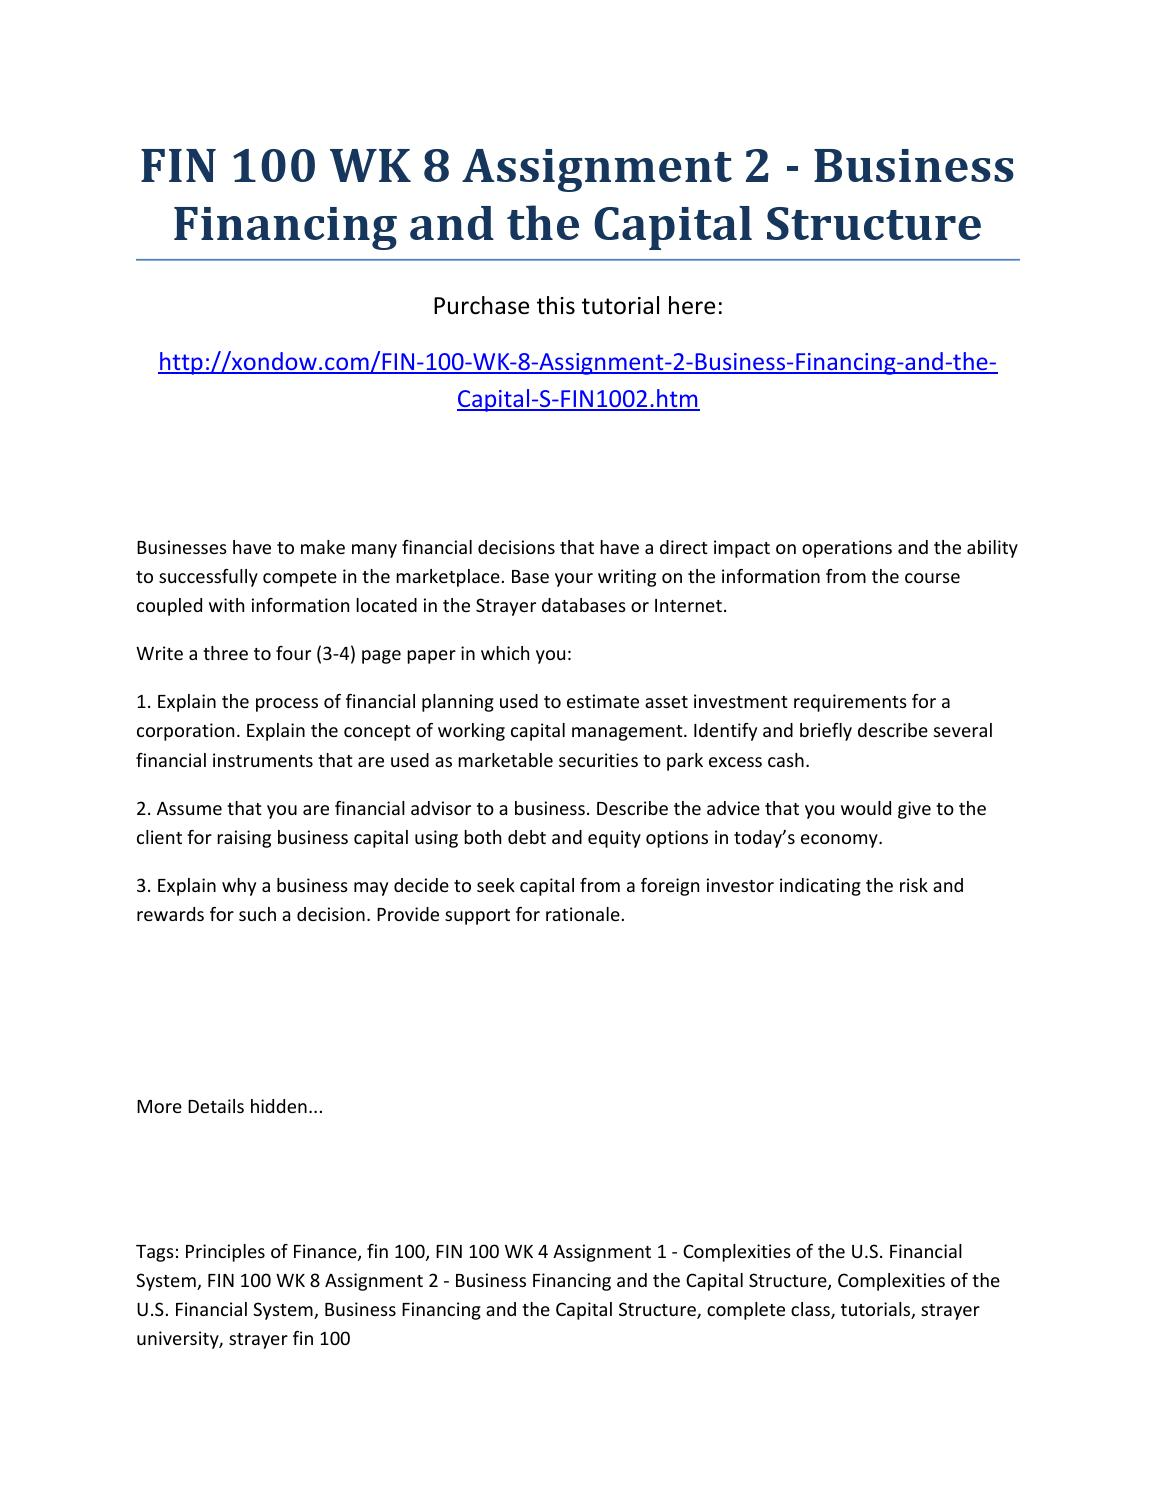 business financing and the capital structure 2 essay Running head capital structure and financing 1 the capital structure essay the scope of this paper is to examine the two primary sources of business.